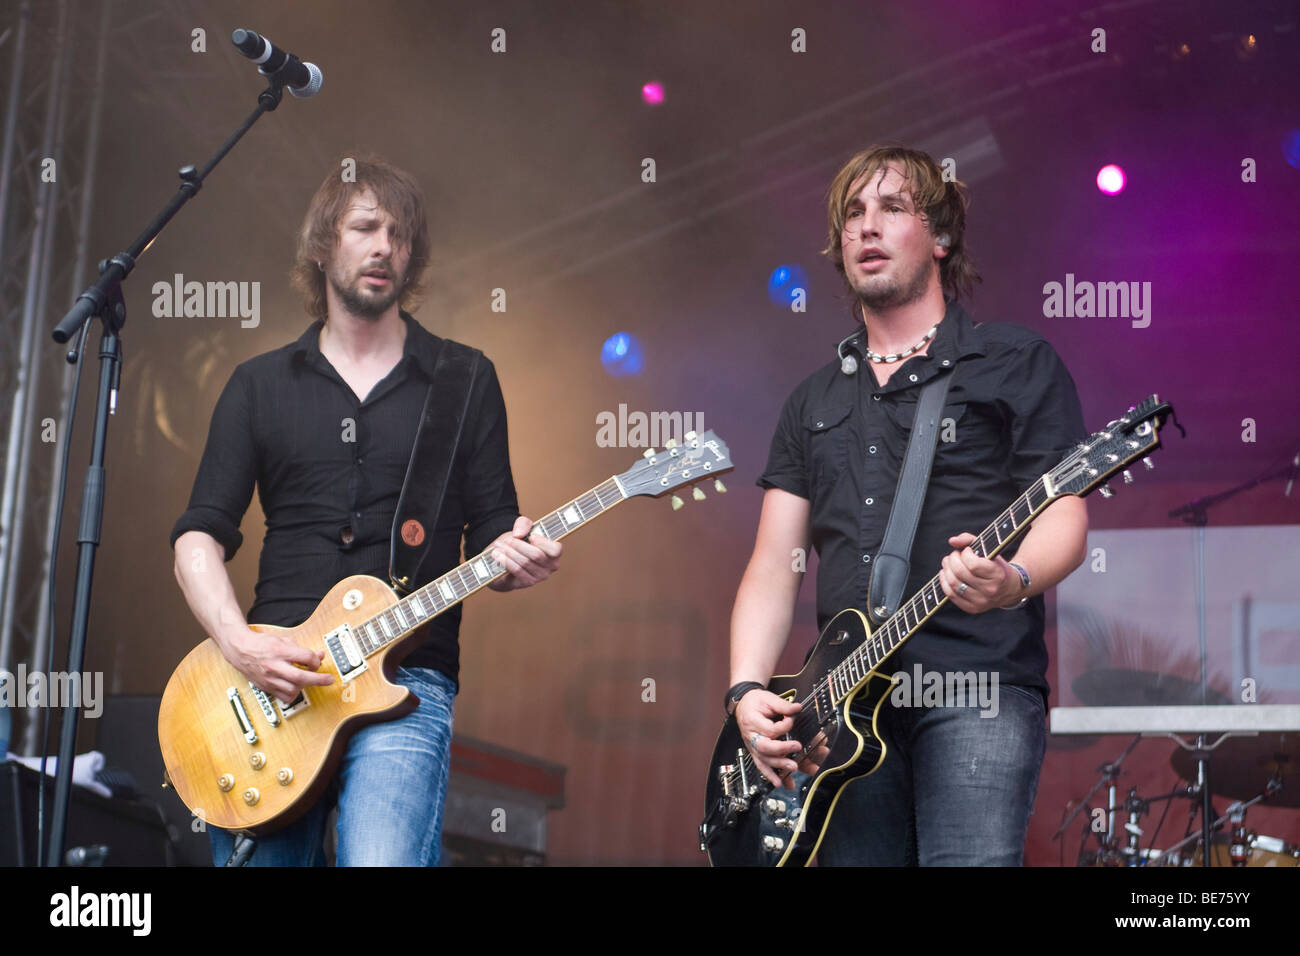 Swiss rock band Vivian, live at the Lucerne Festival in Lucerne, Switzerland - Stock Image